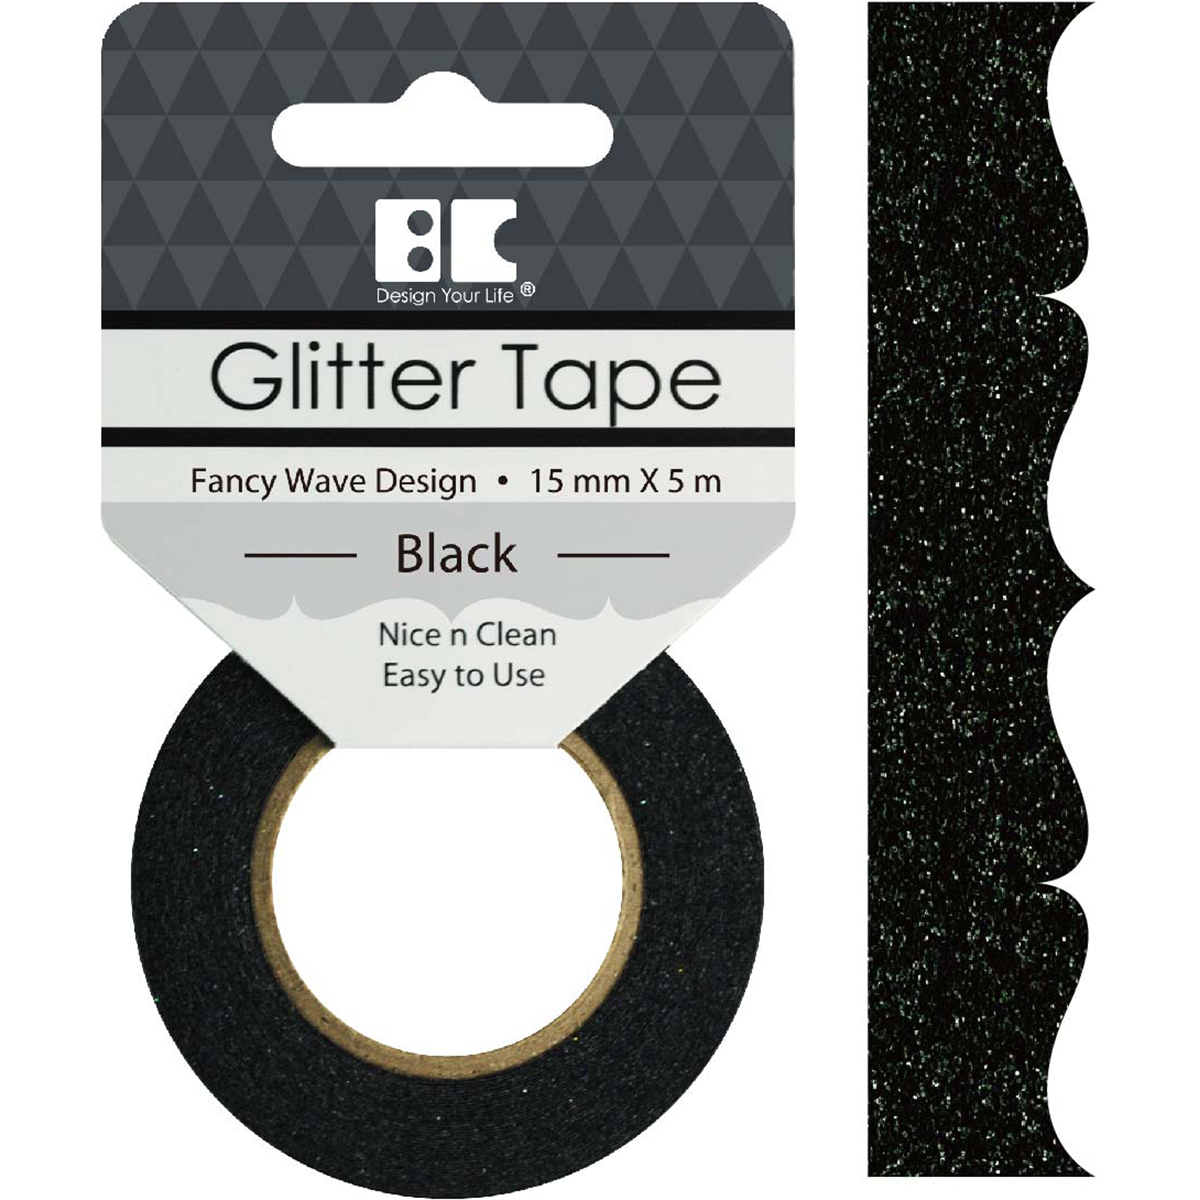 Best Creation Designer Glitter Tape 15mmx5m-Black Fancy Wave